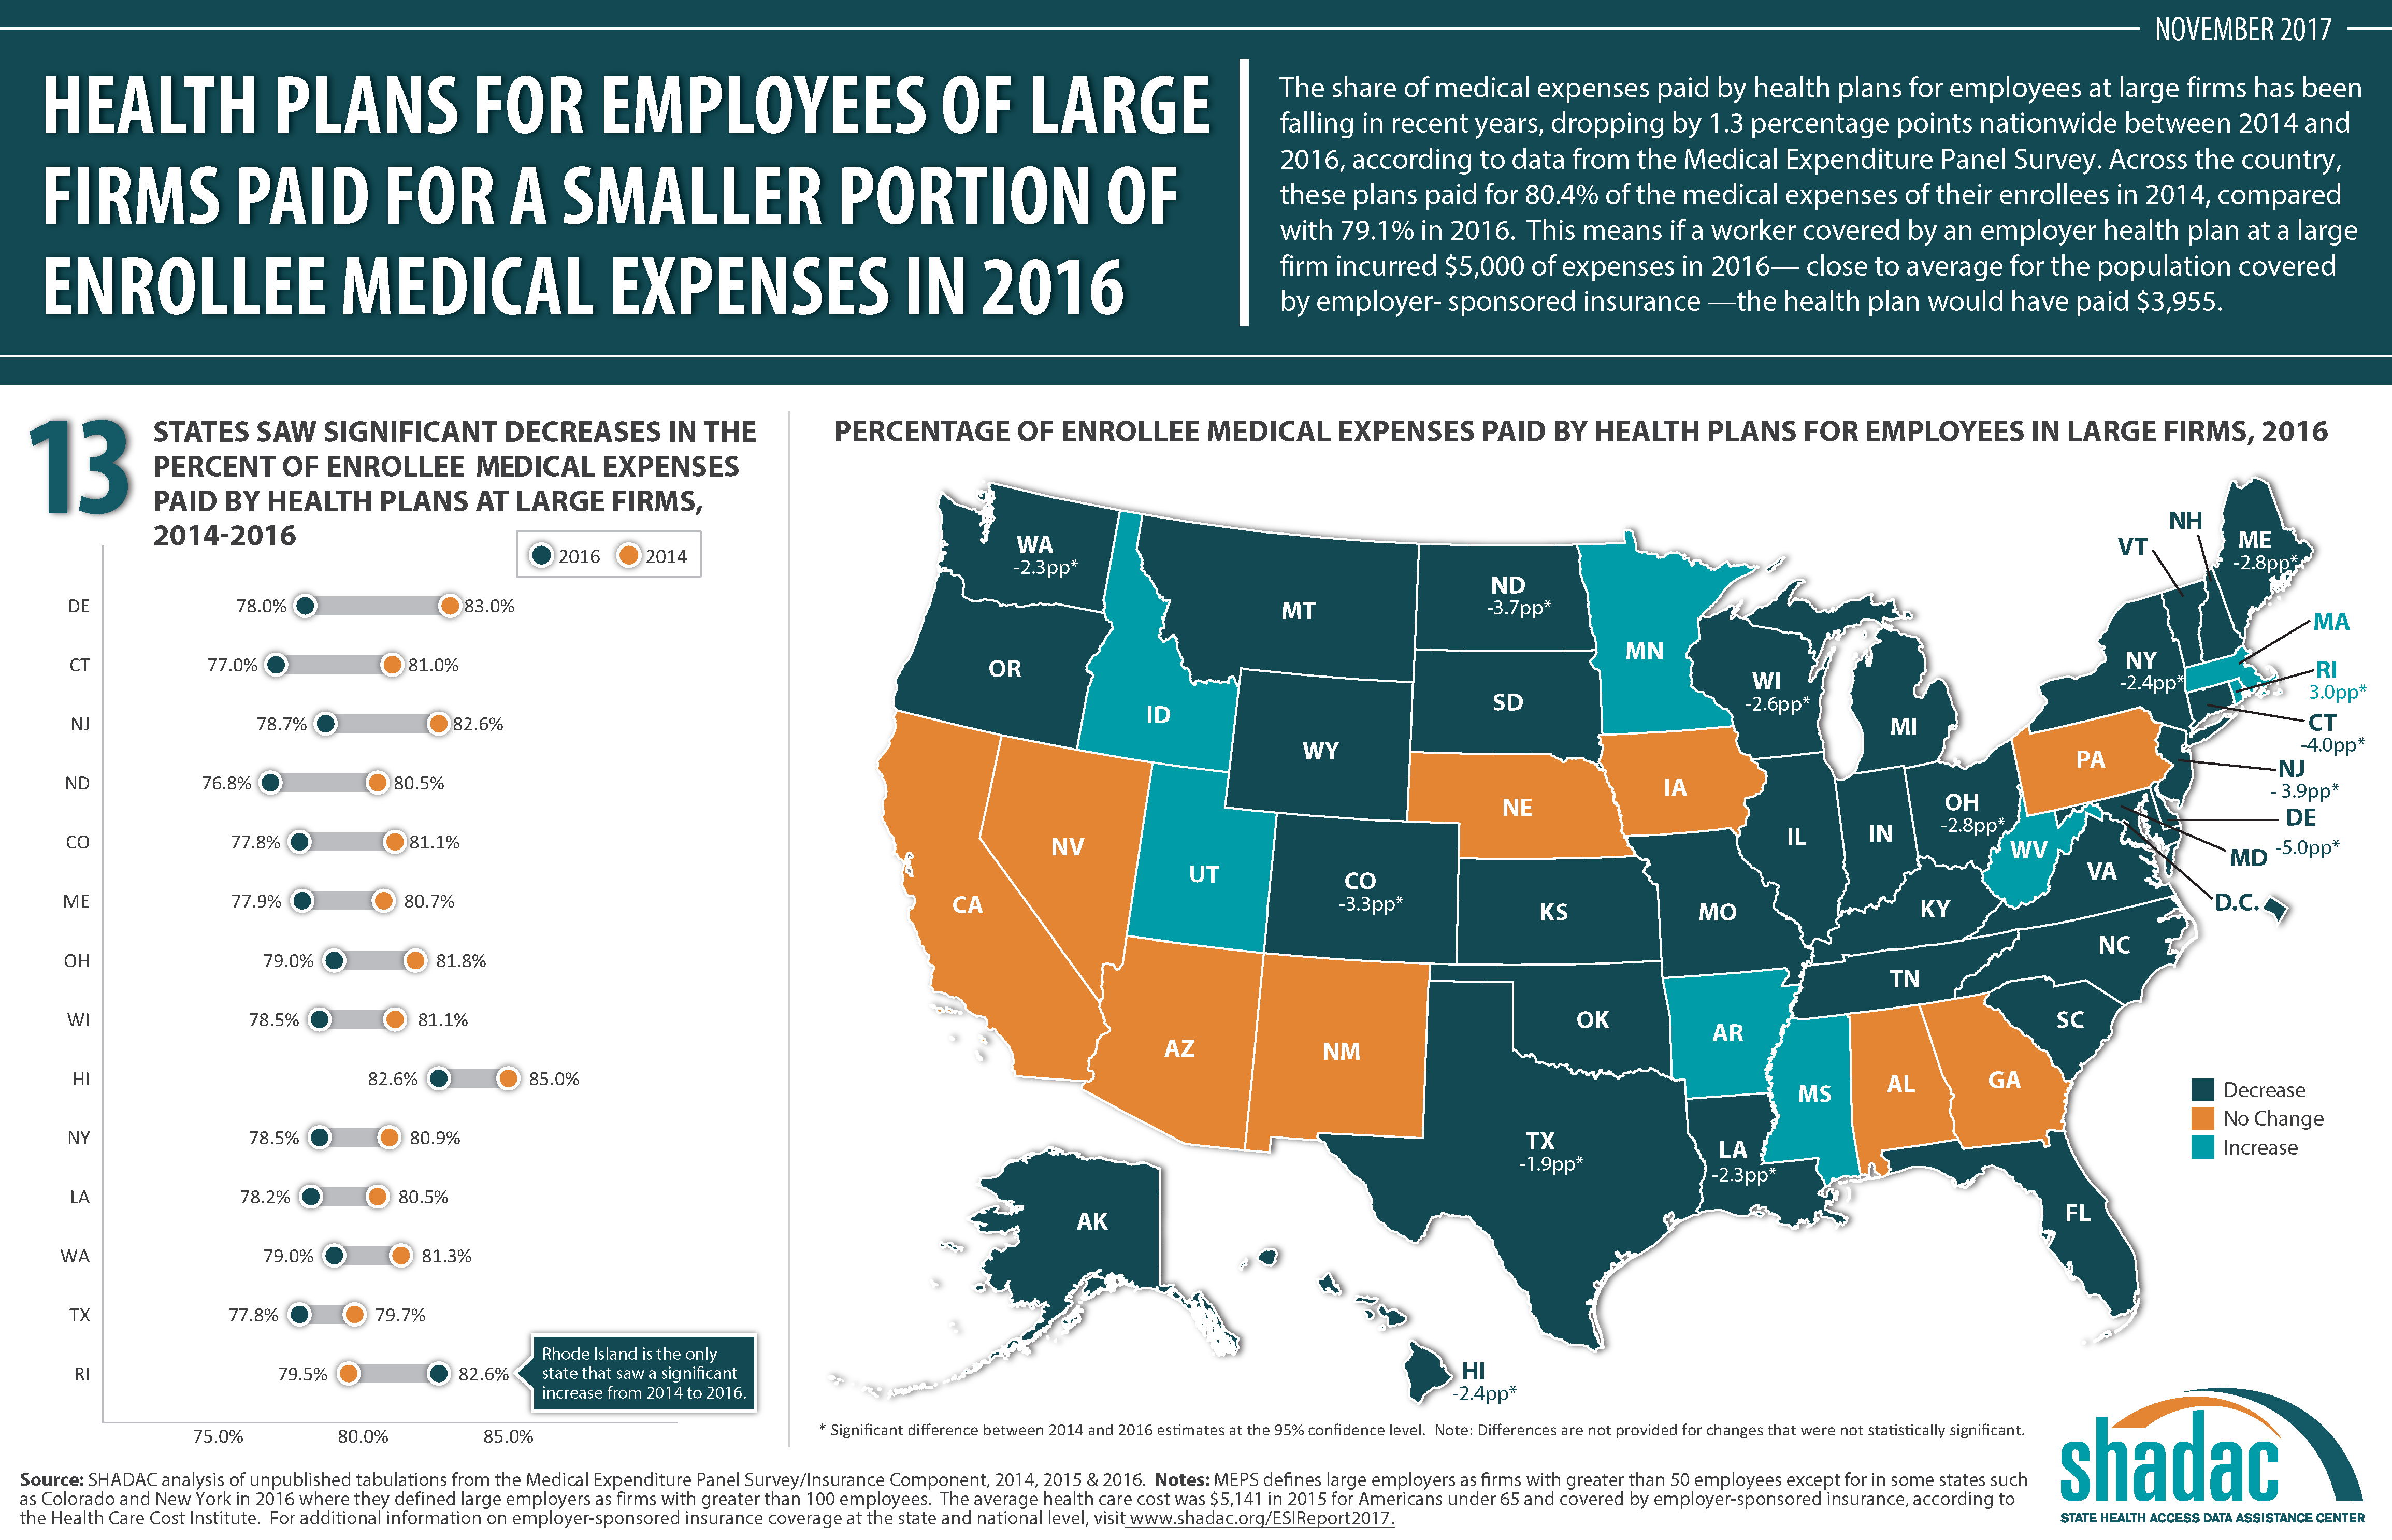 Employer Health Plan At A Large Firm Incurred 5000 Of Expenses In 2016 Close To The Average For The Population Covered By Employer Sponsored Insurance